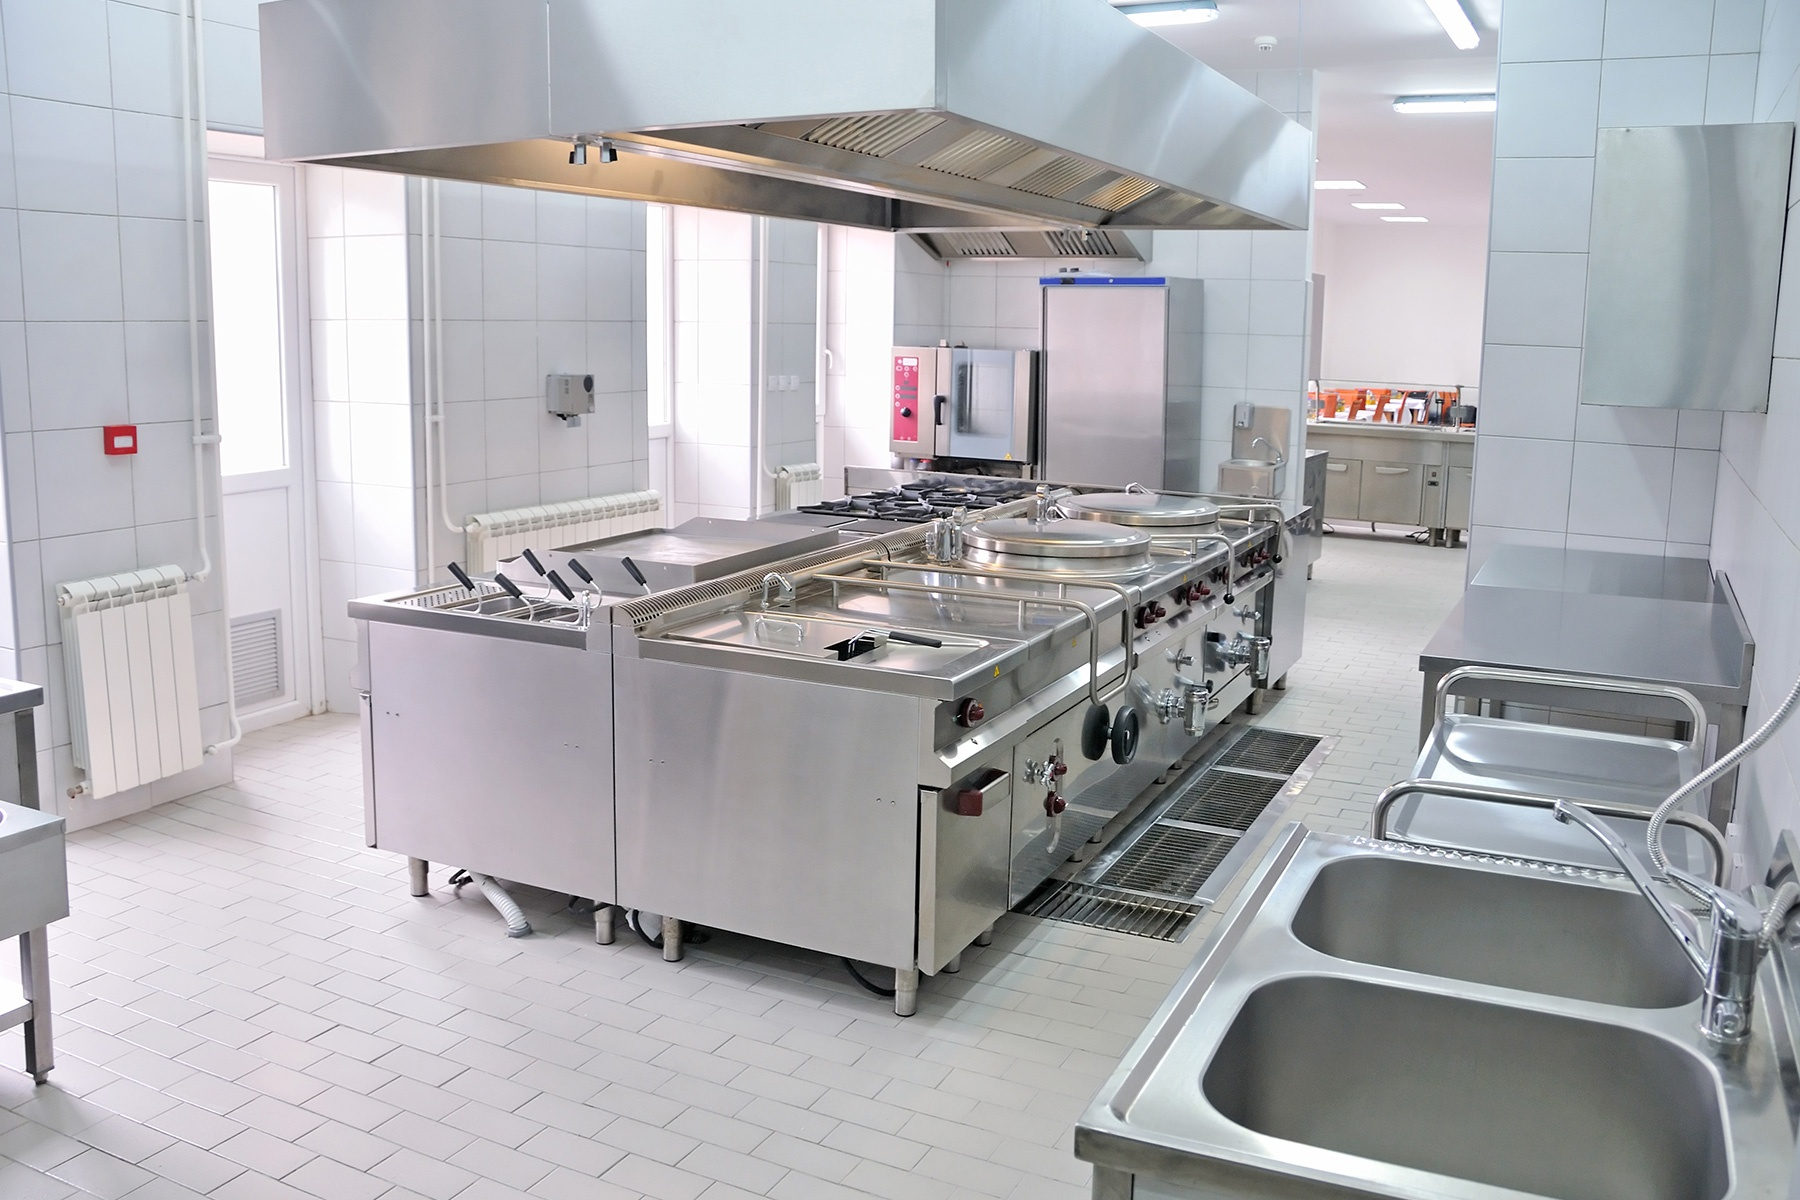 SamTell-Blog-Principles-of-Commercial-Kitchen-Floor-Plans-for-Efficient-Flow